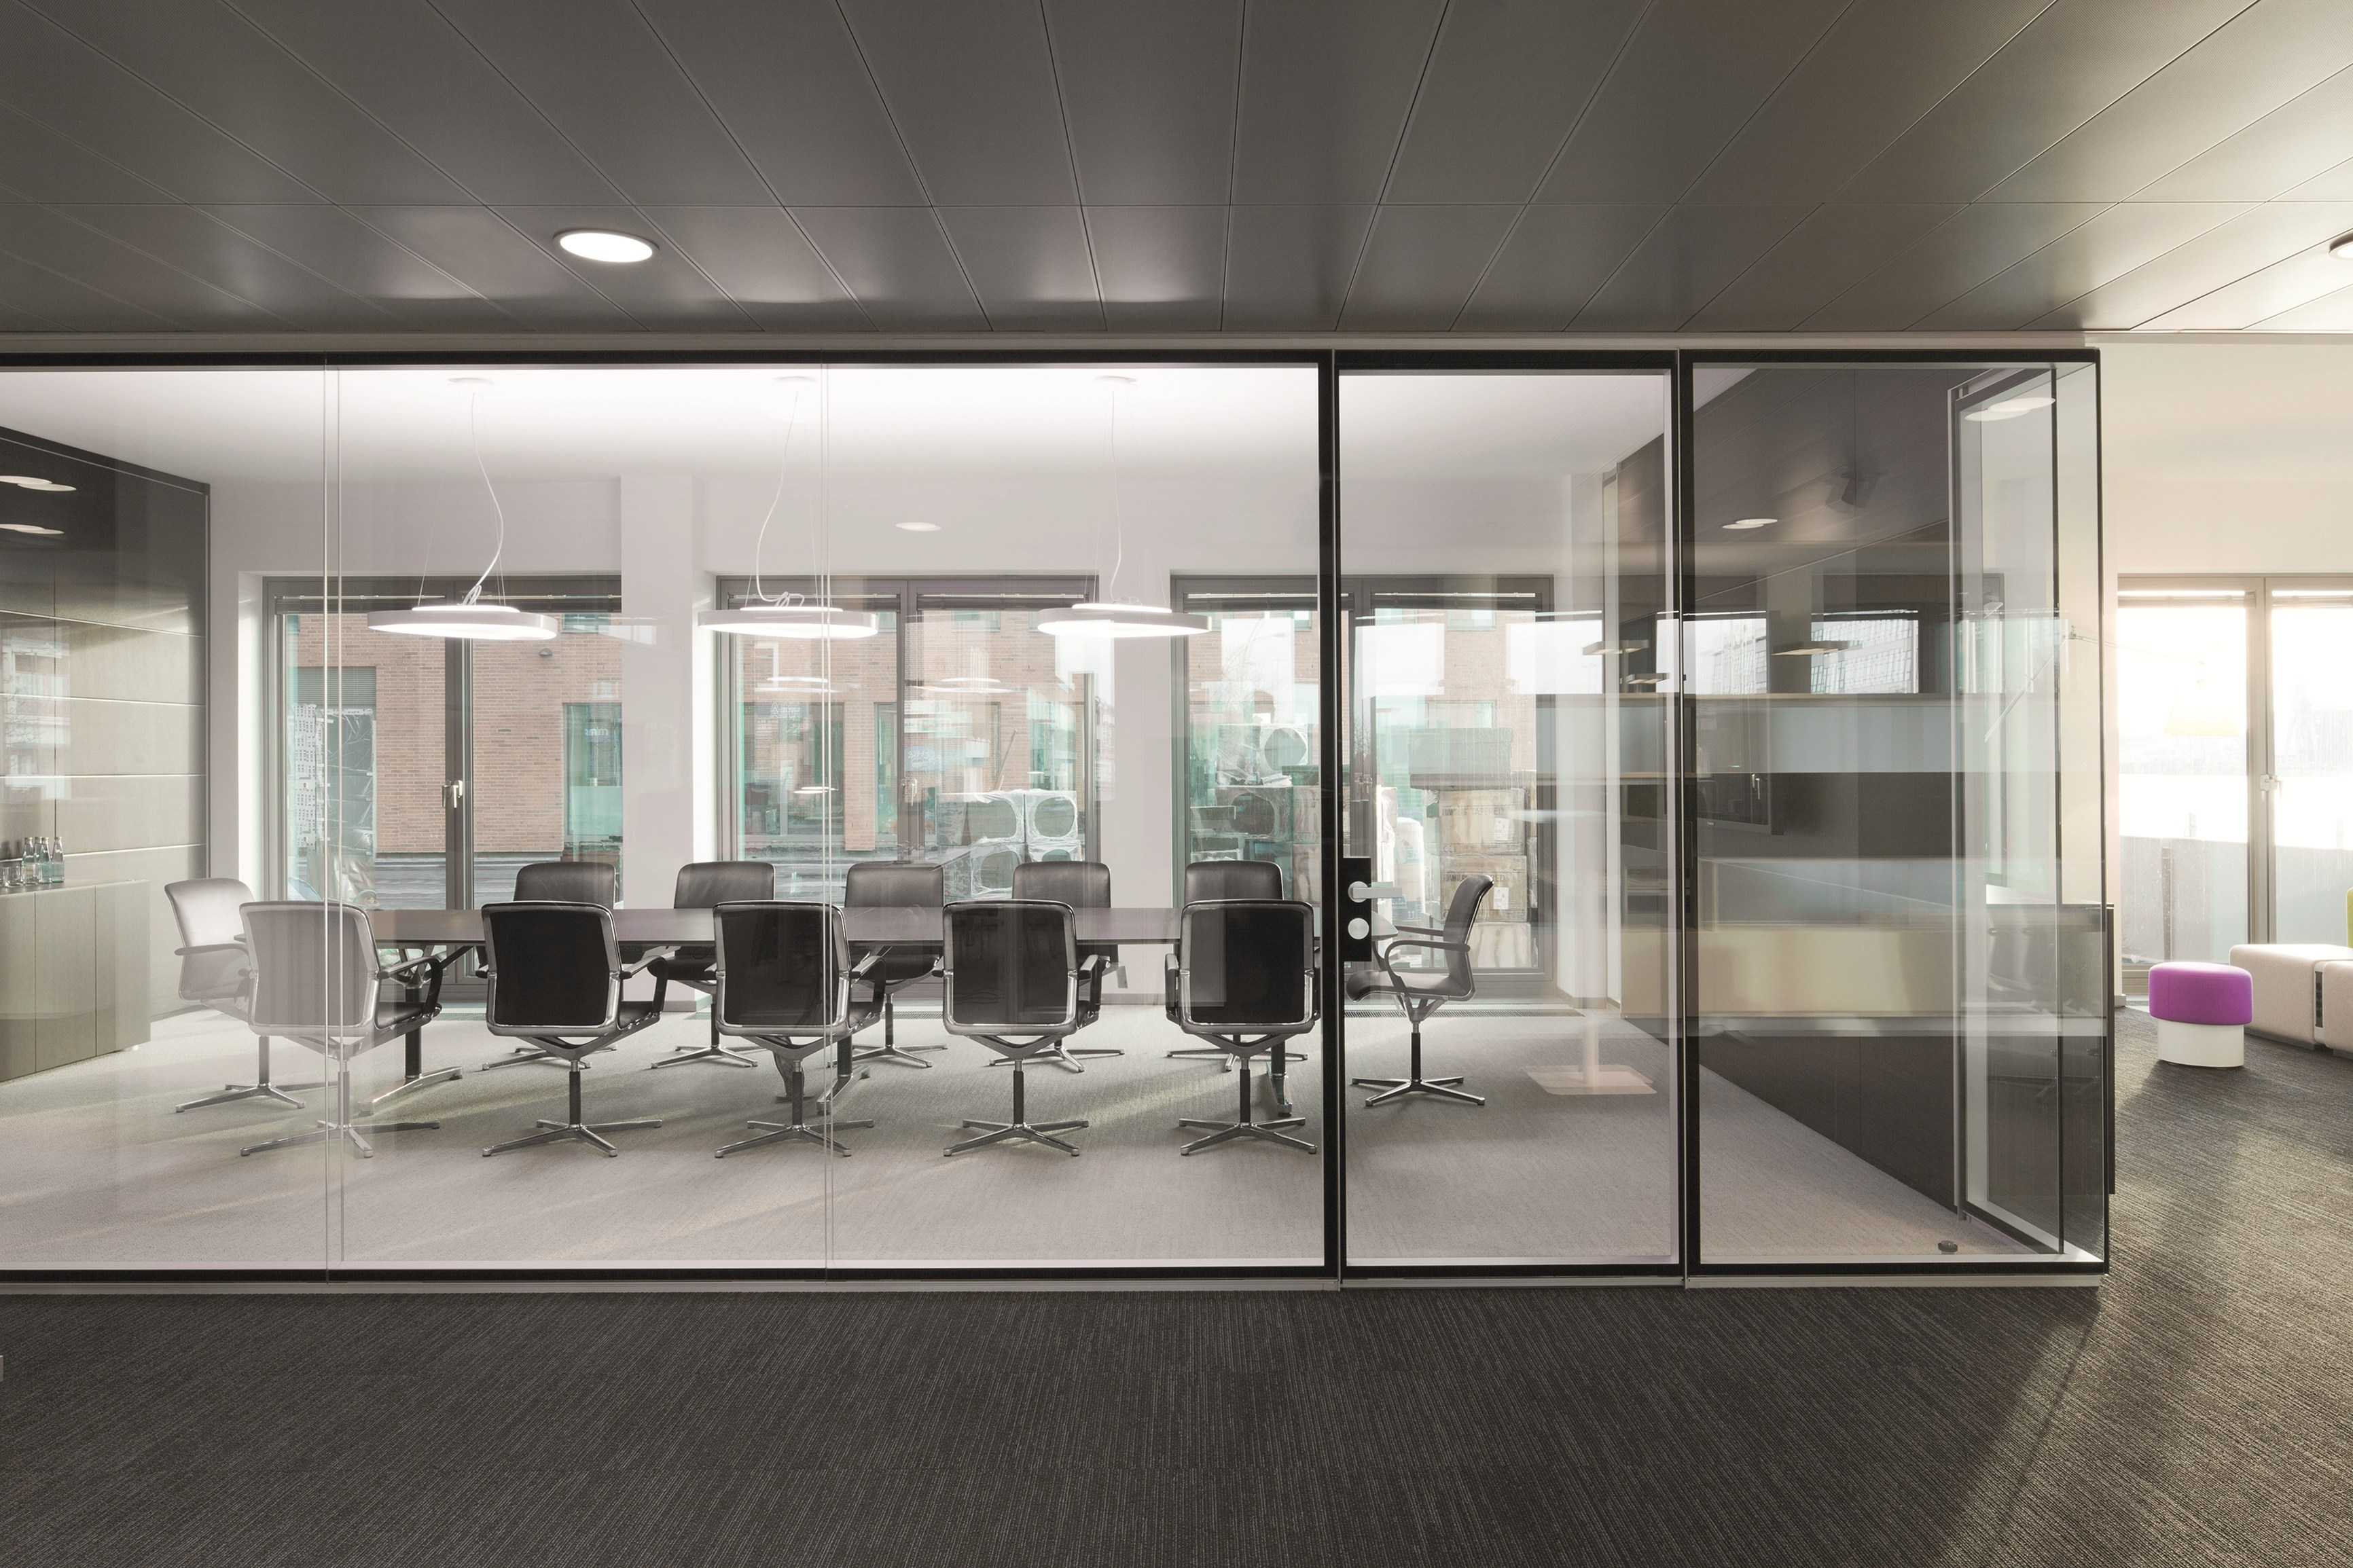 Offices With Glass Walls Photo   2